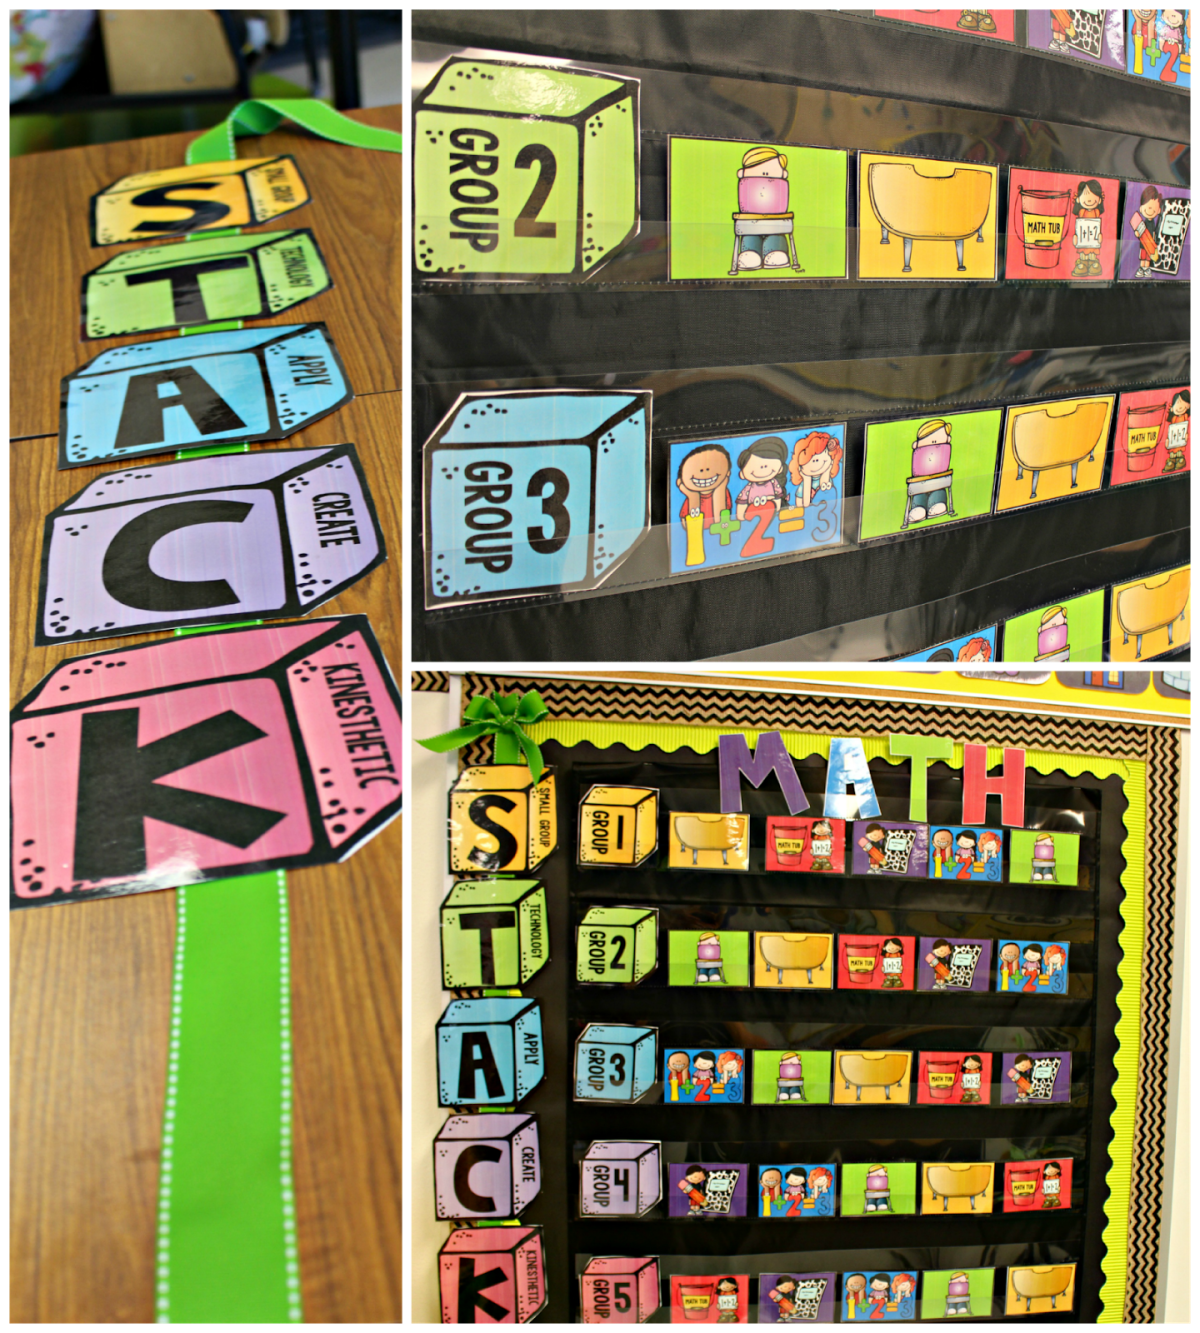 http://www.teacherspayteachers.com/Product/Guided-Math-Rotation-Board-1413492